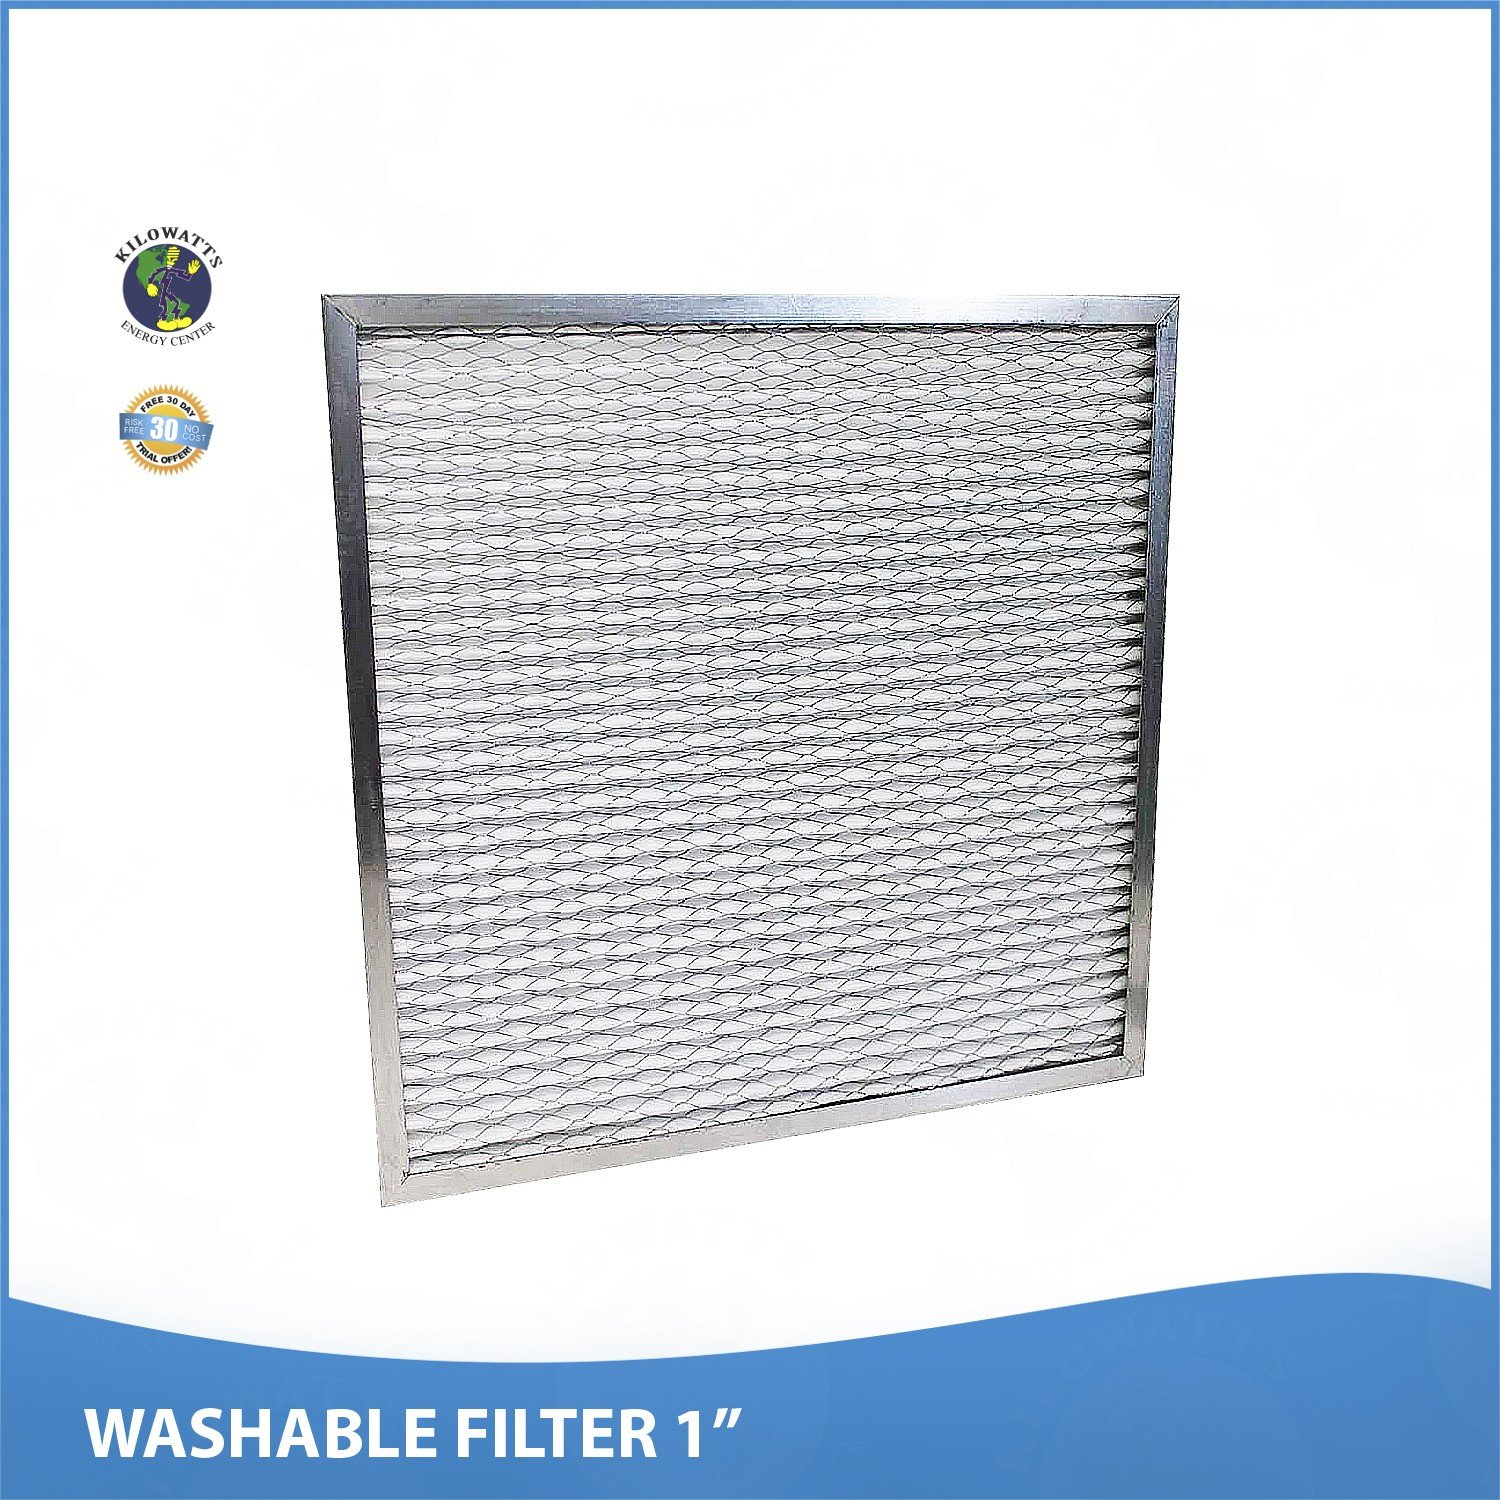 10x30x1 Washable Permanent A/C Furnace Air Filter. Low Air Resistance